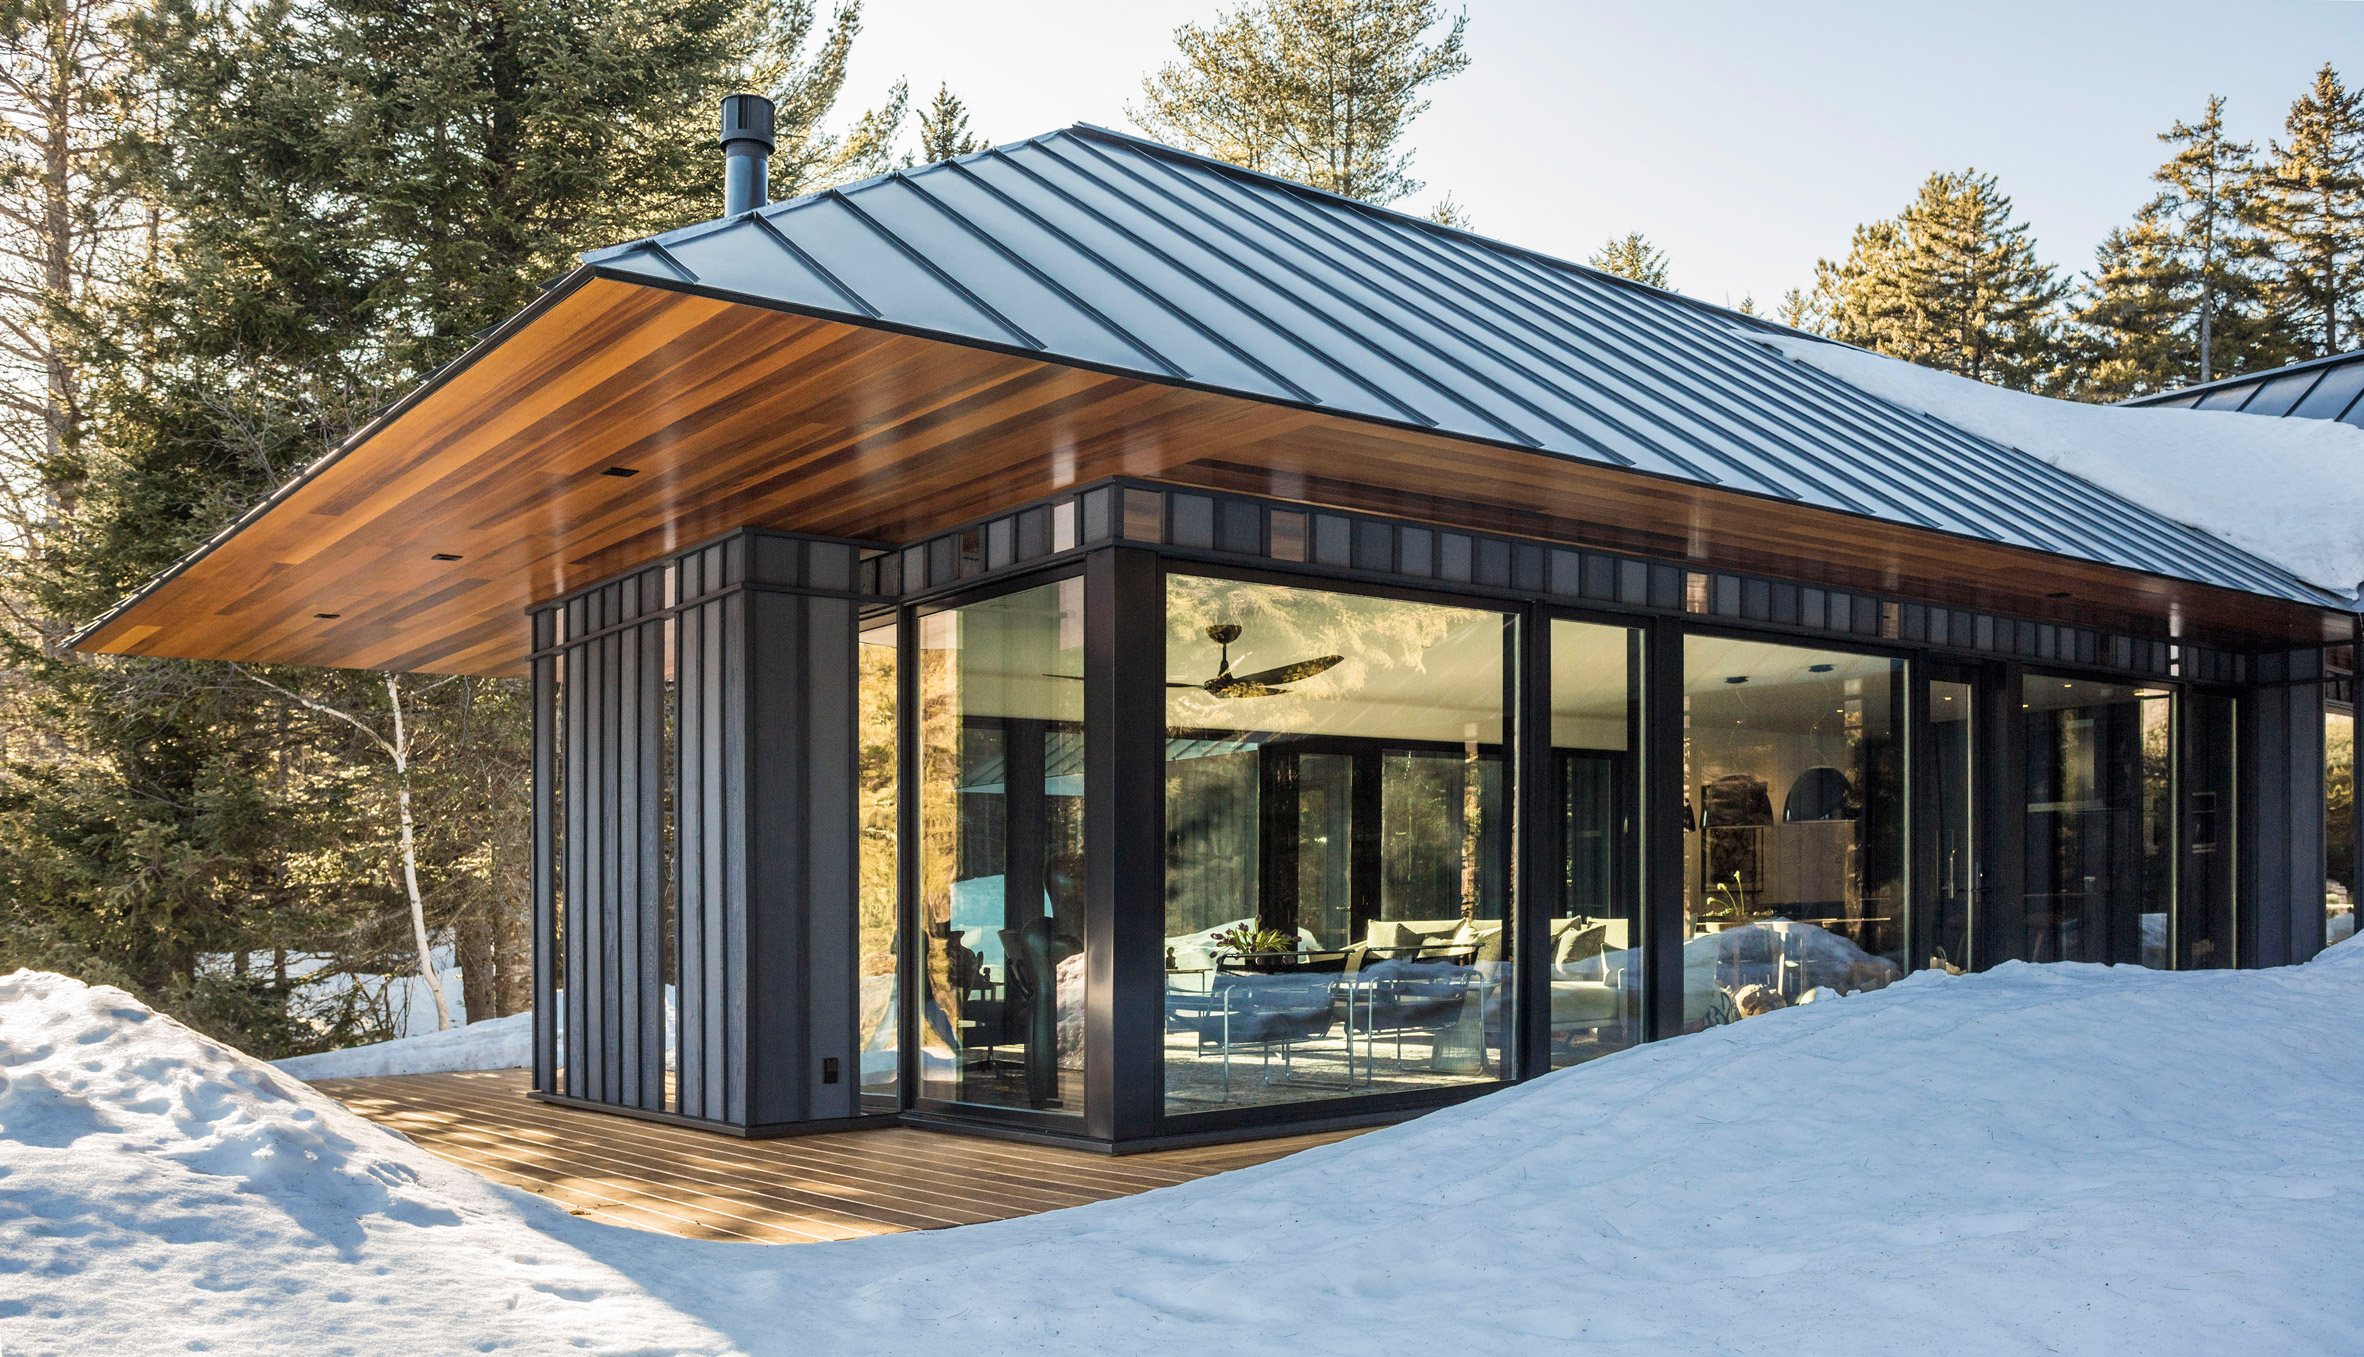 Birdseye Design references local vernacular for secluded Vermont dwelling